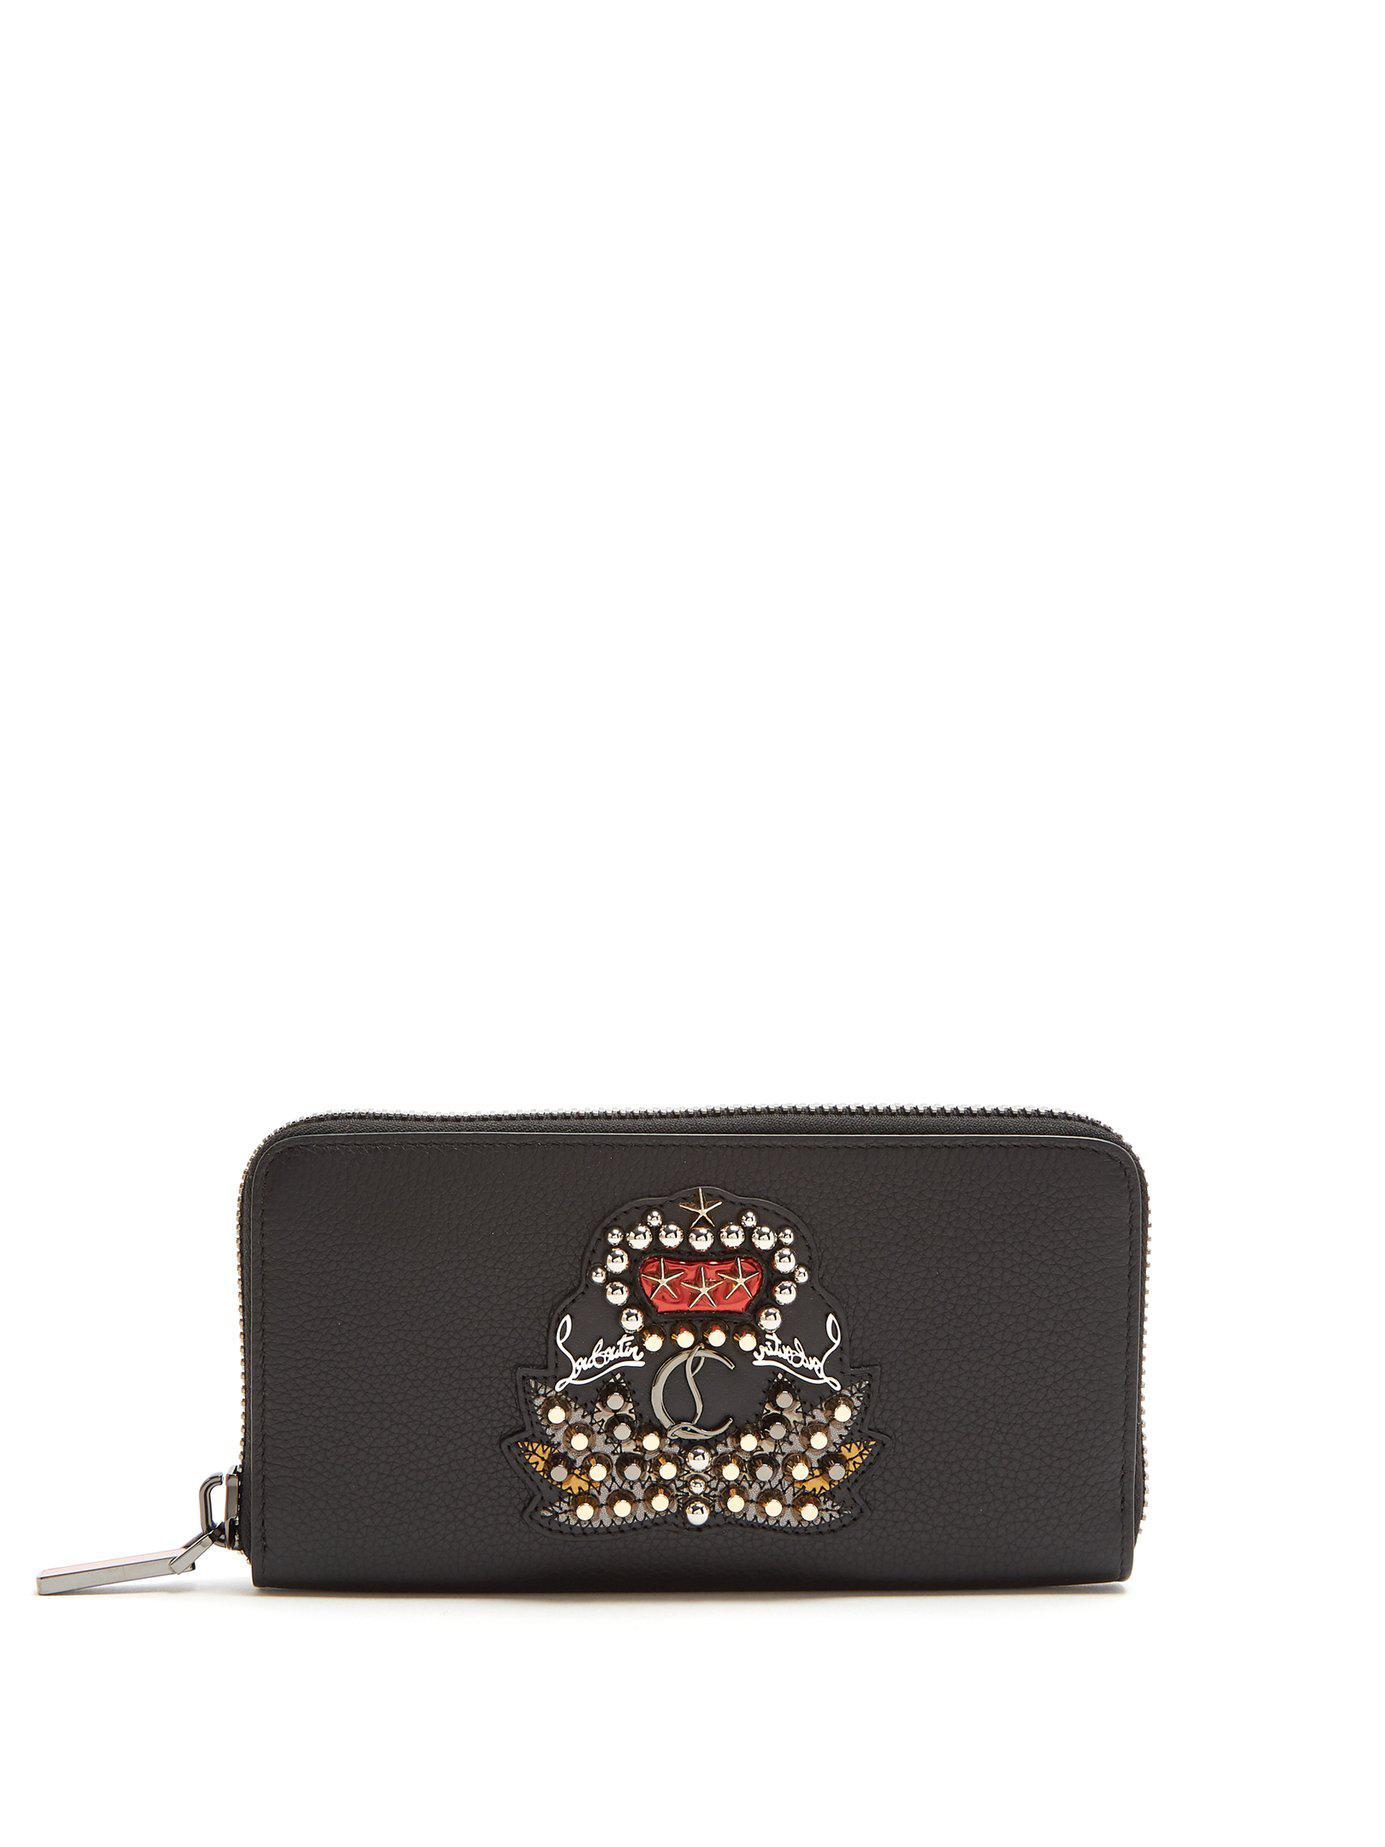 c739768b239 Lyst - Christian Louboutin Panettone Zip Around Leather Wallet in ...